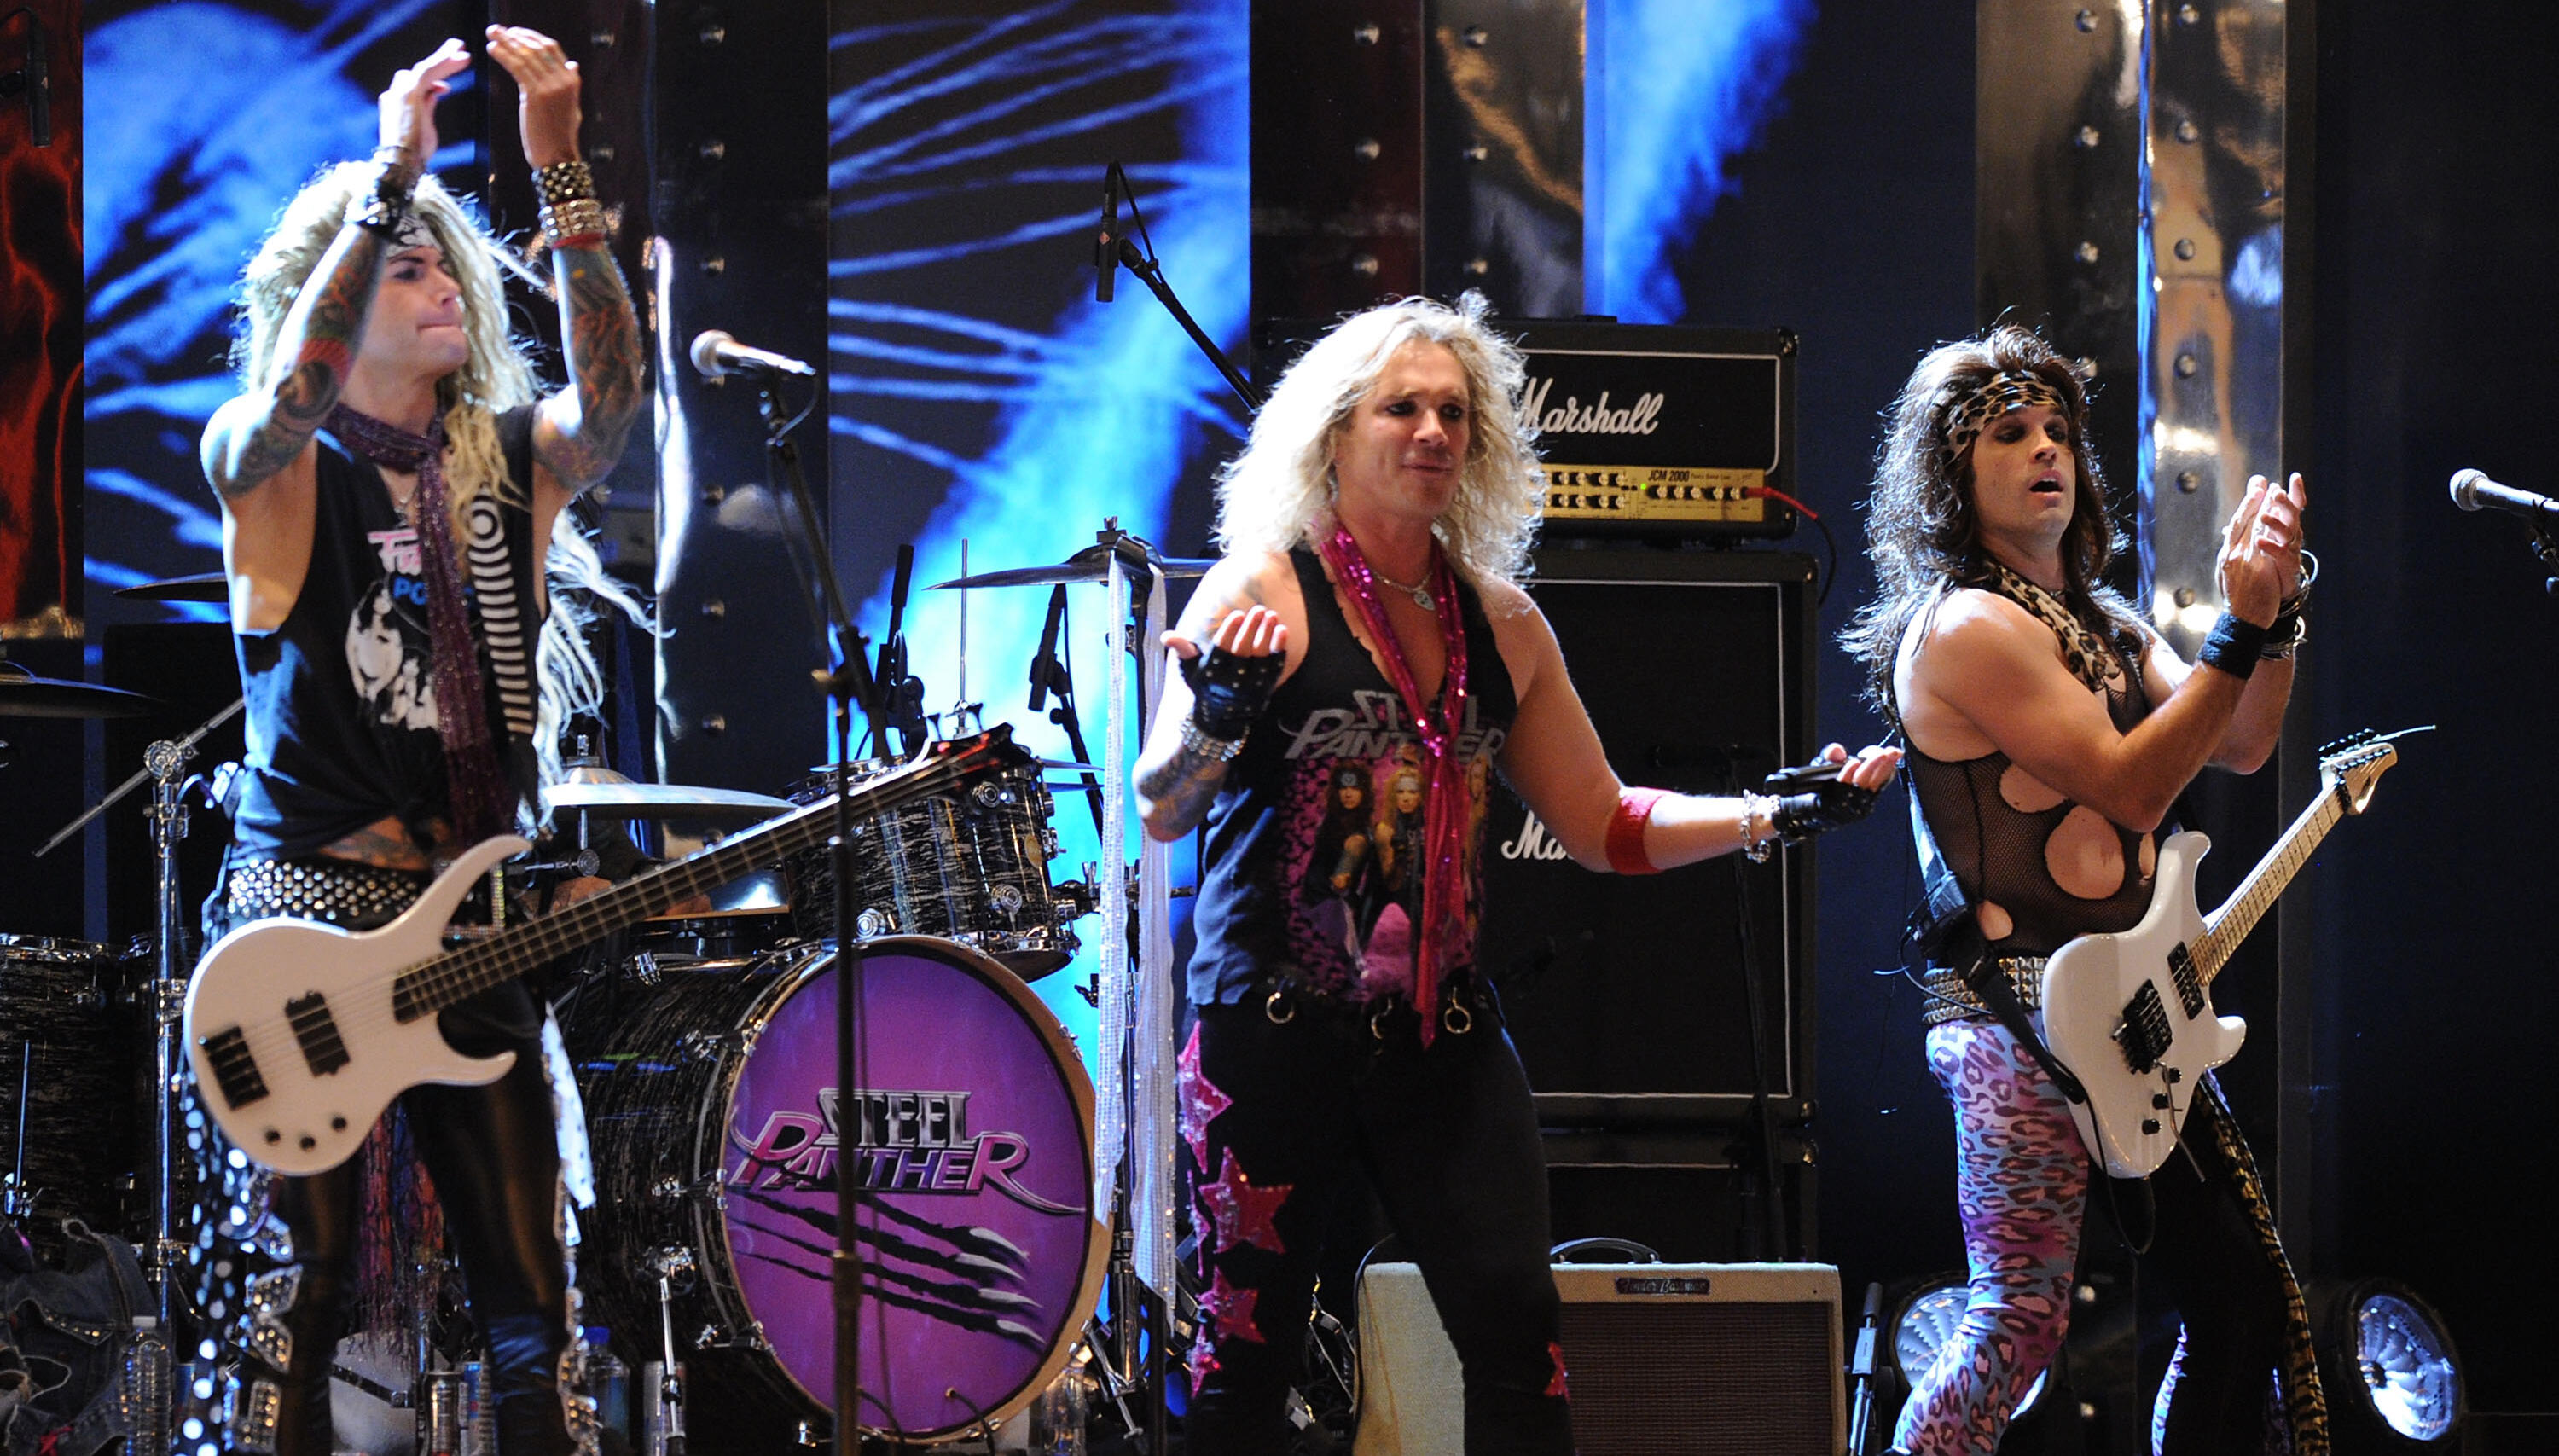 Steel Panther Announce Two Drive-In Live Concerts In Pennsylvania